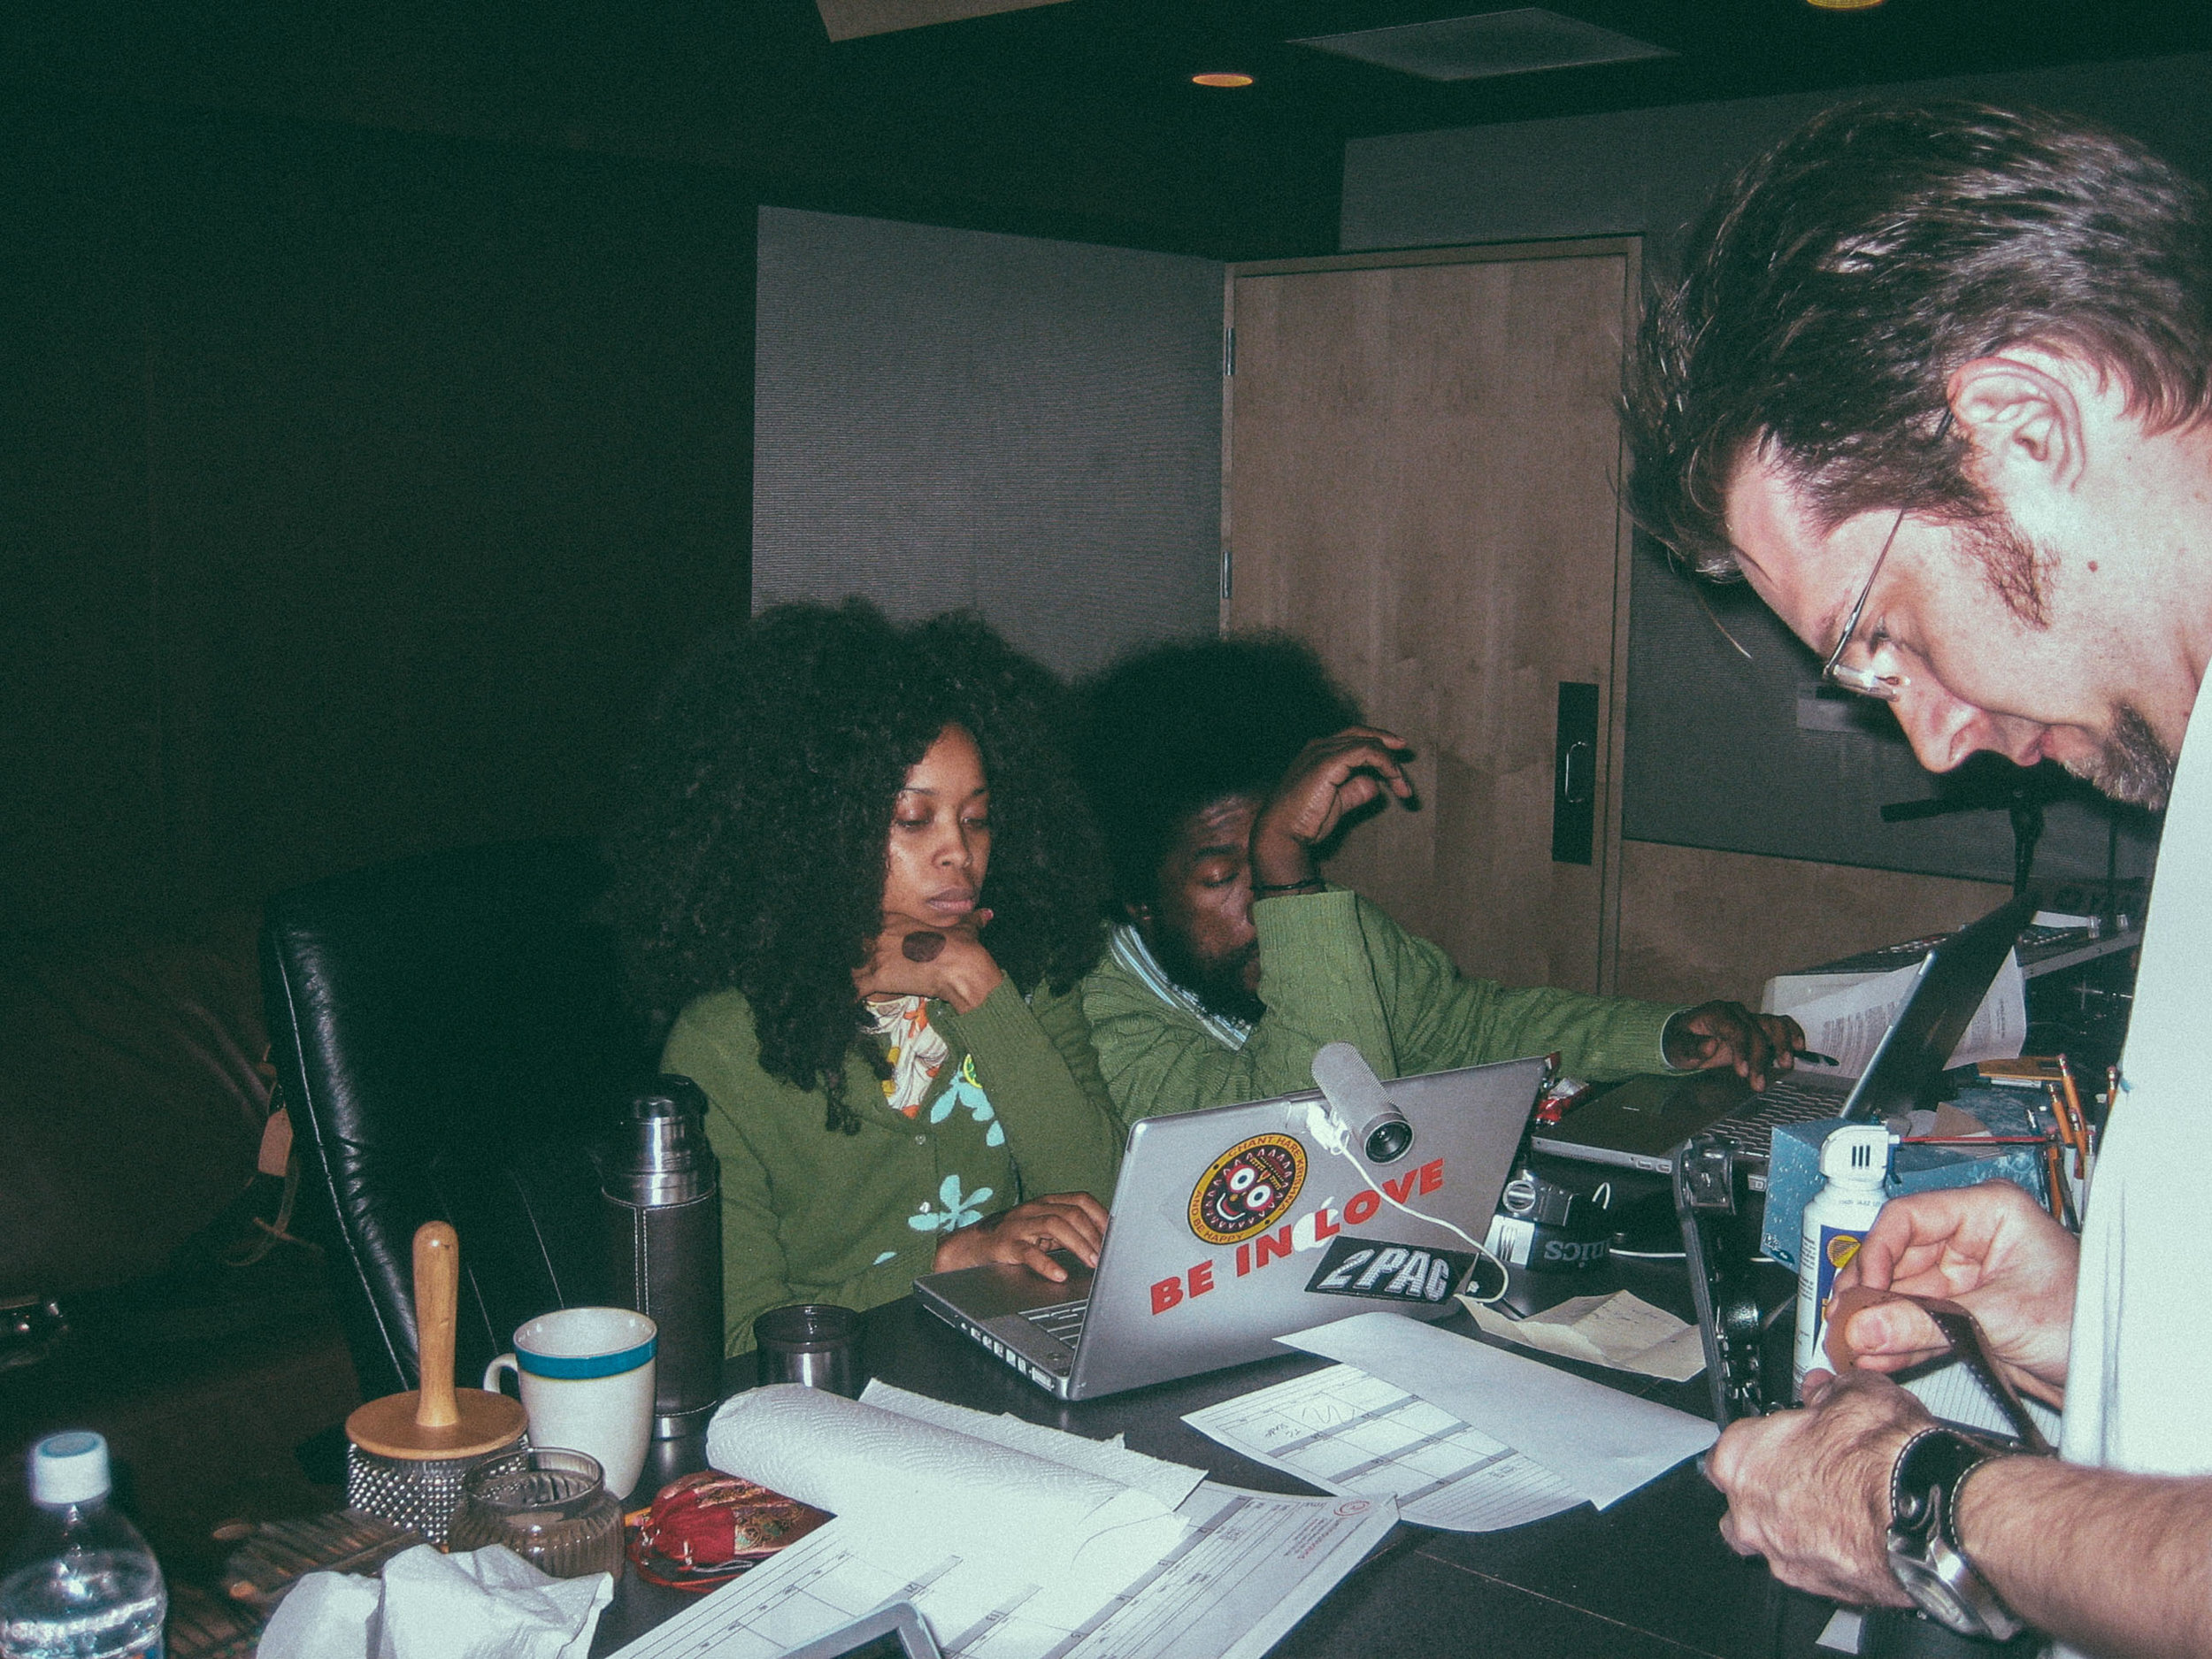 """In session with Erykah Badu and Questlove recording the song """"Window Seat"""" at Luminous Sound"""